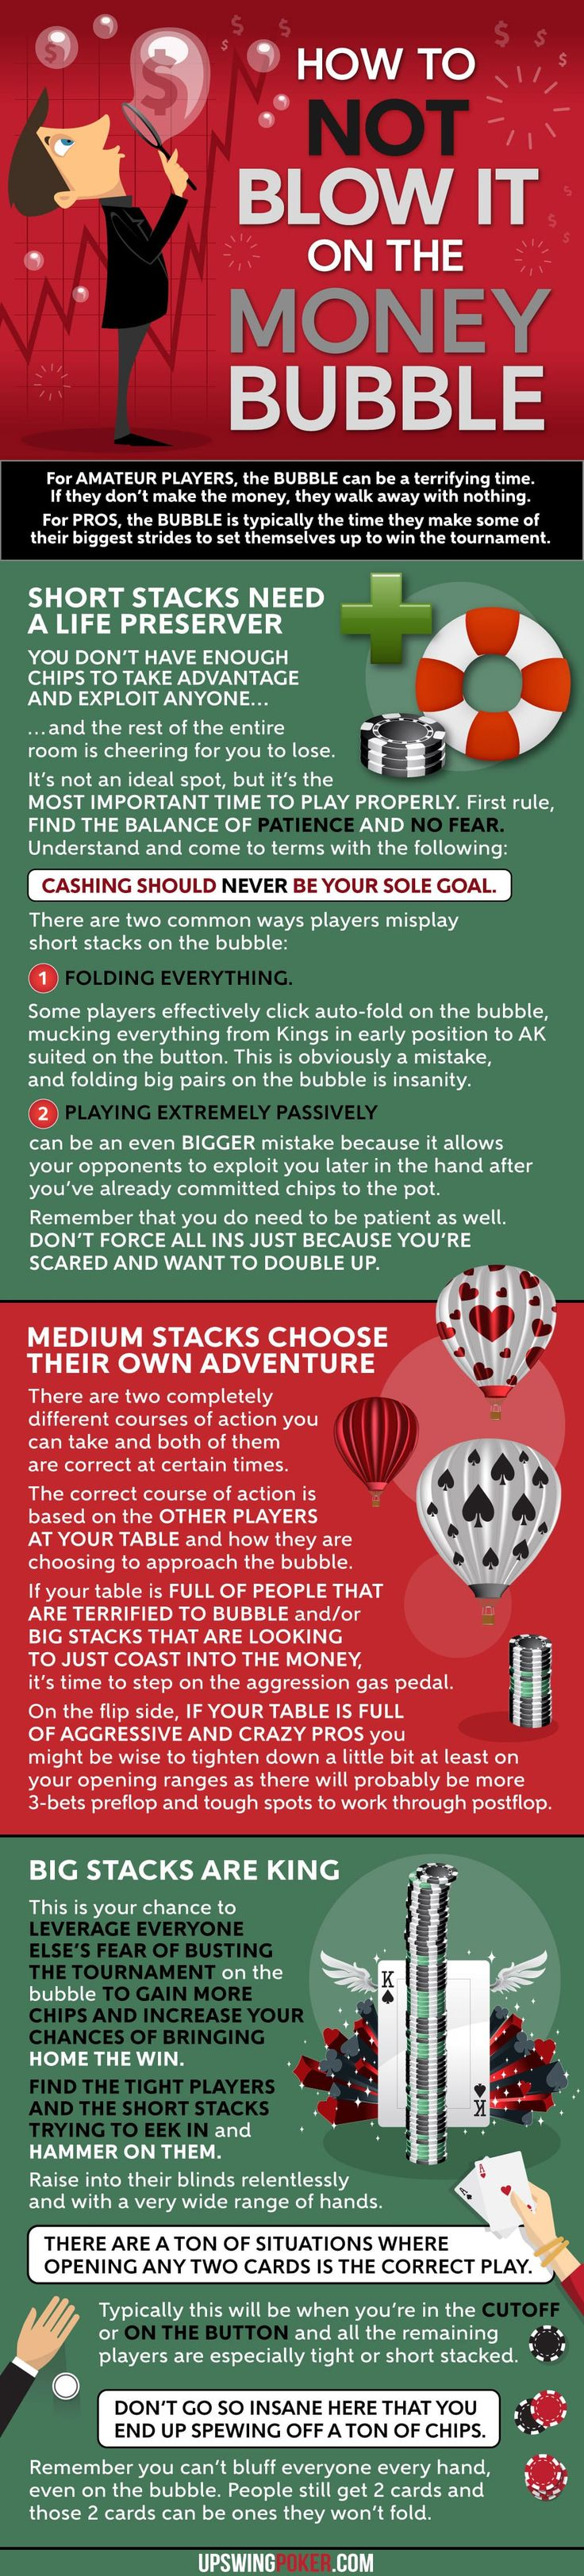 Money bubble tournament poker strategy. Learn to play the bubble with confidence, no matter your stack size.